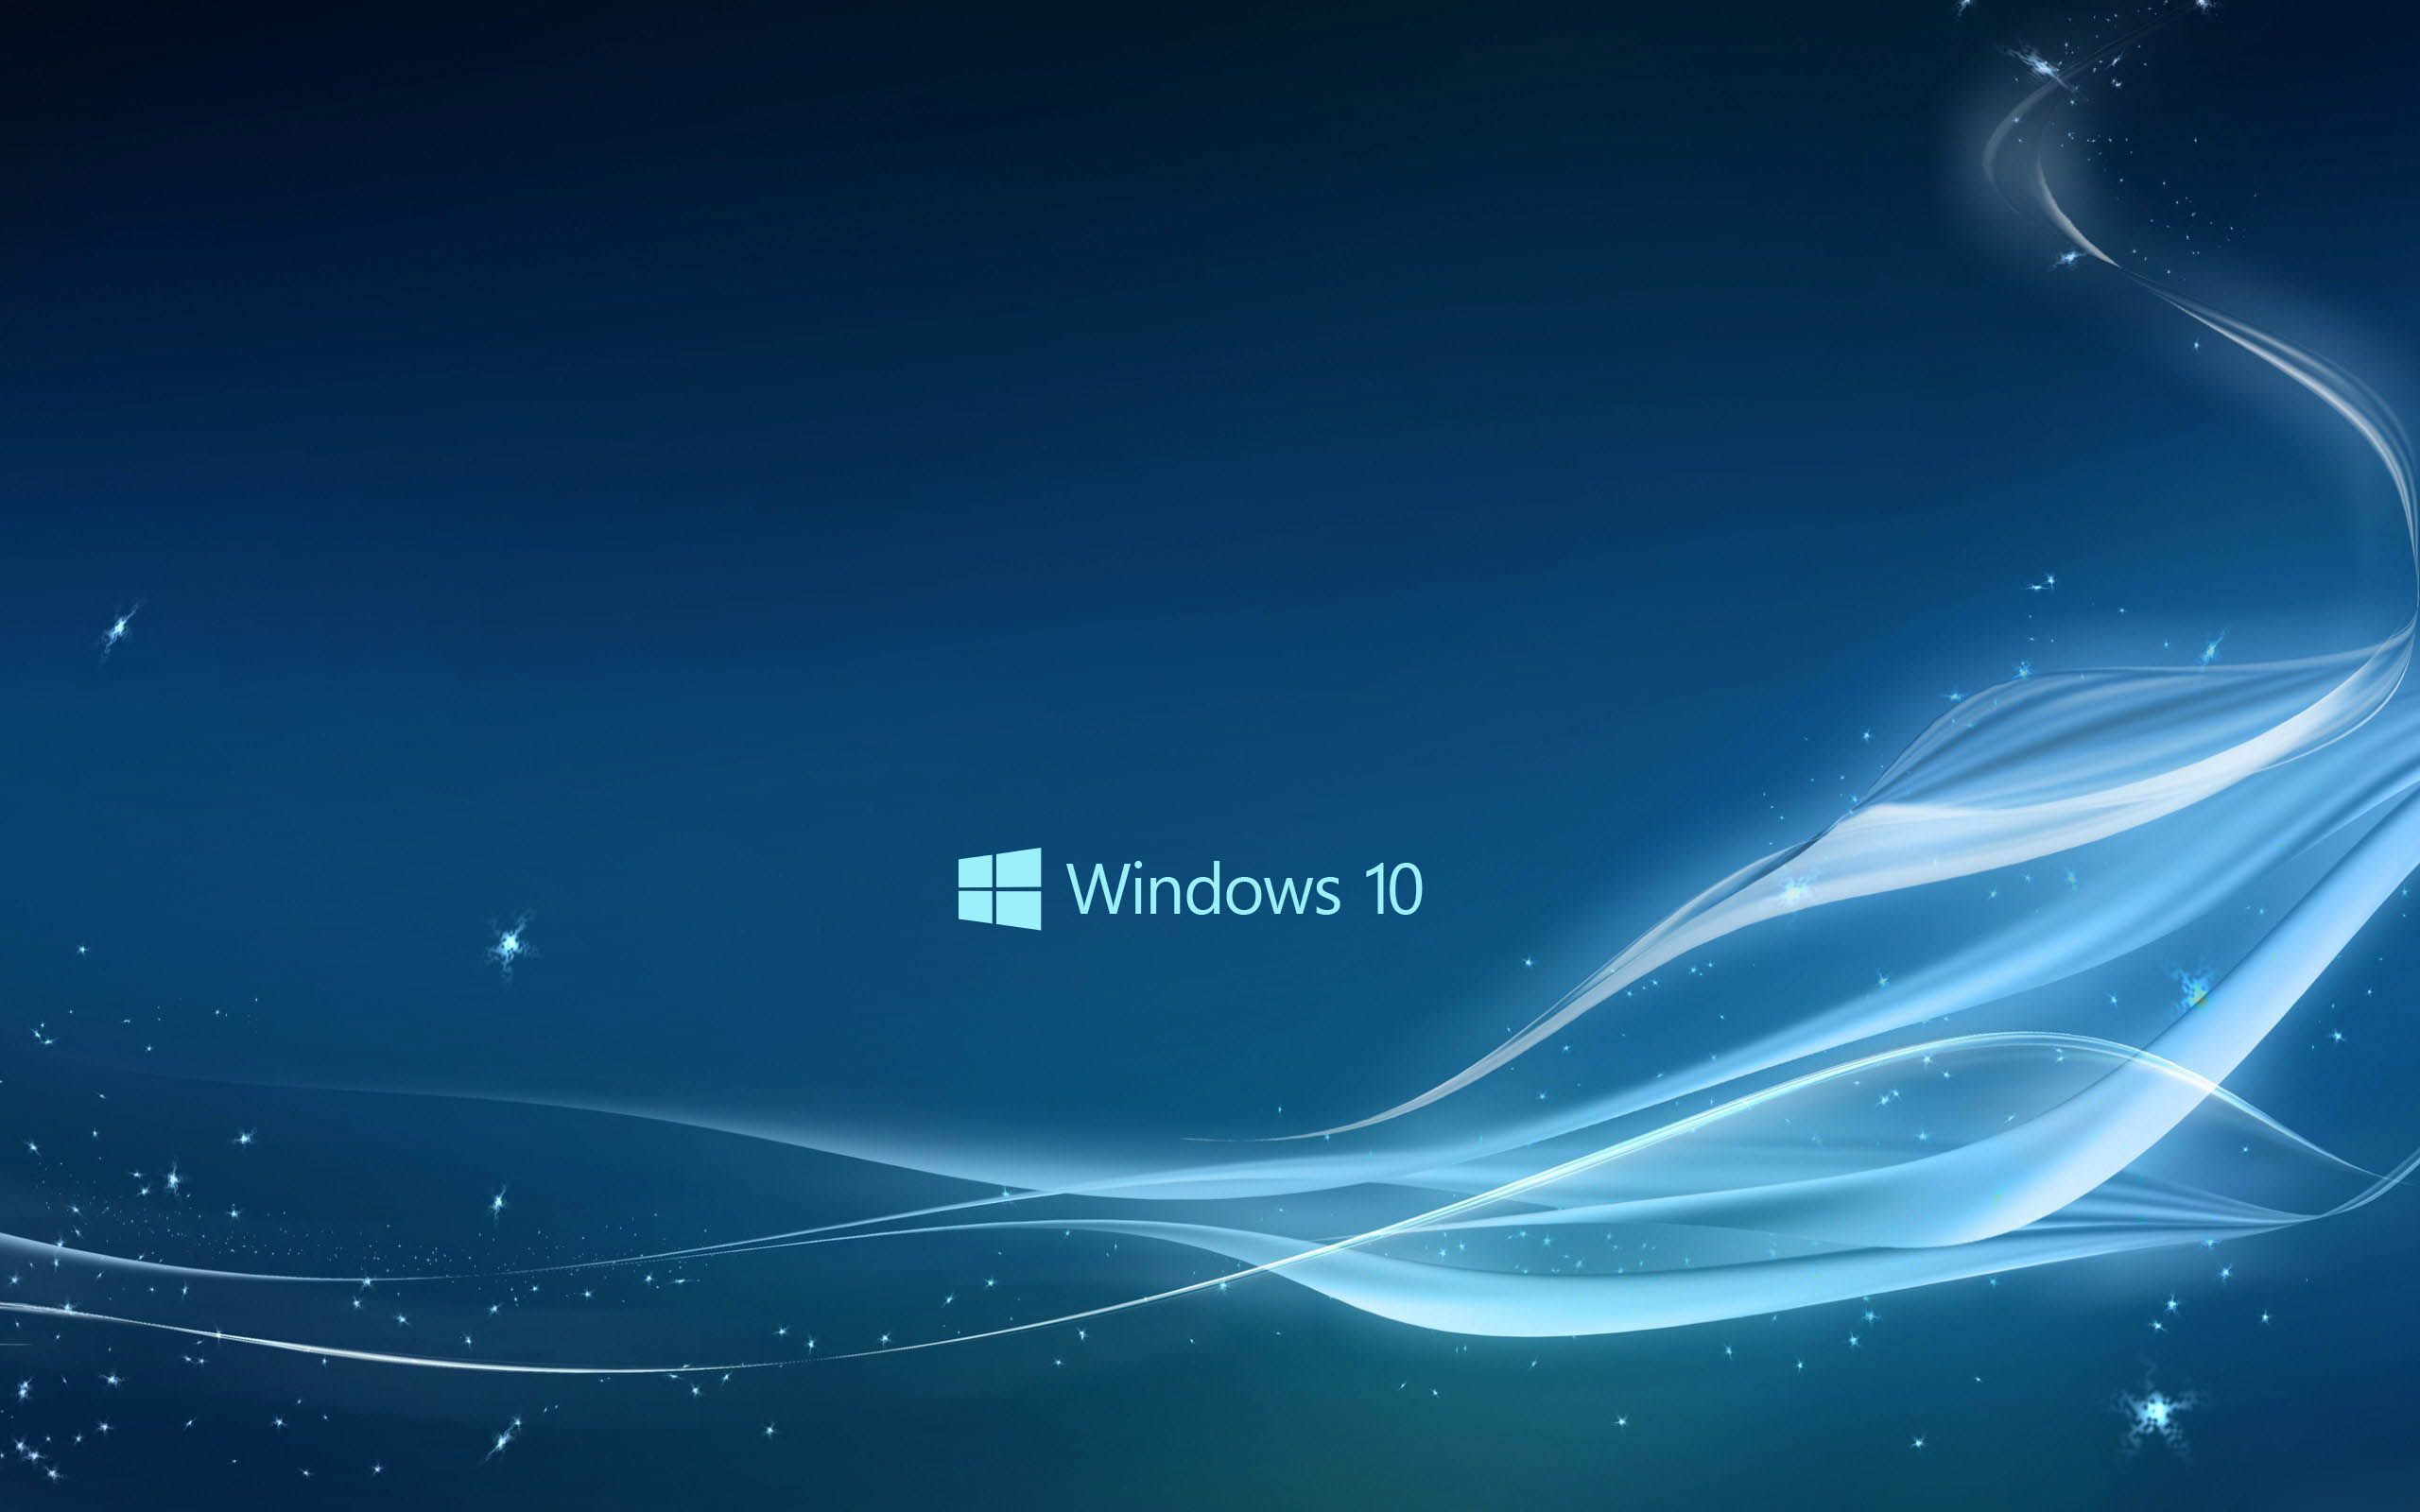 Image Result For Wallpaper For Windows 10 Wallpaper Windows 10 Windows Wallpaper Windows 10 Background